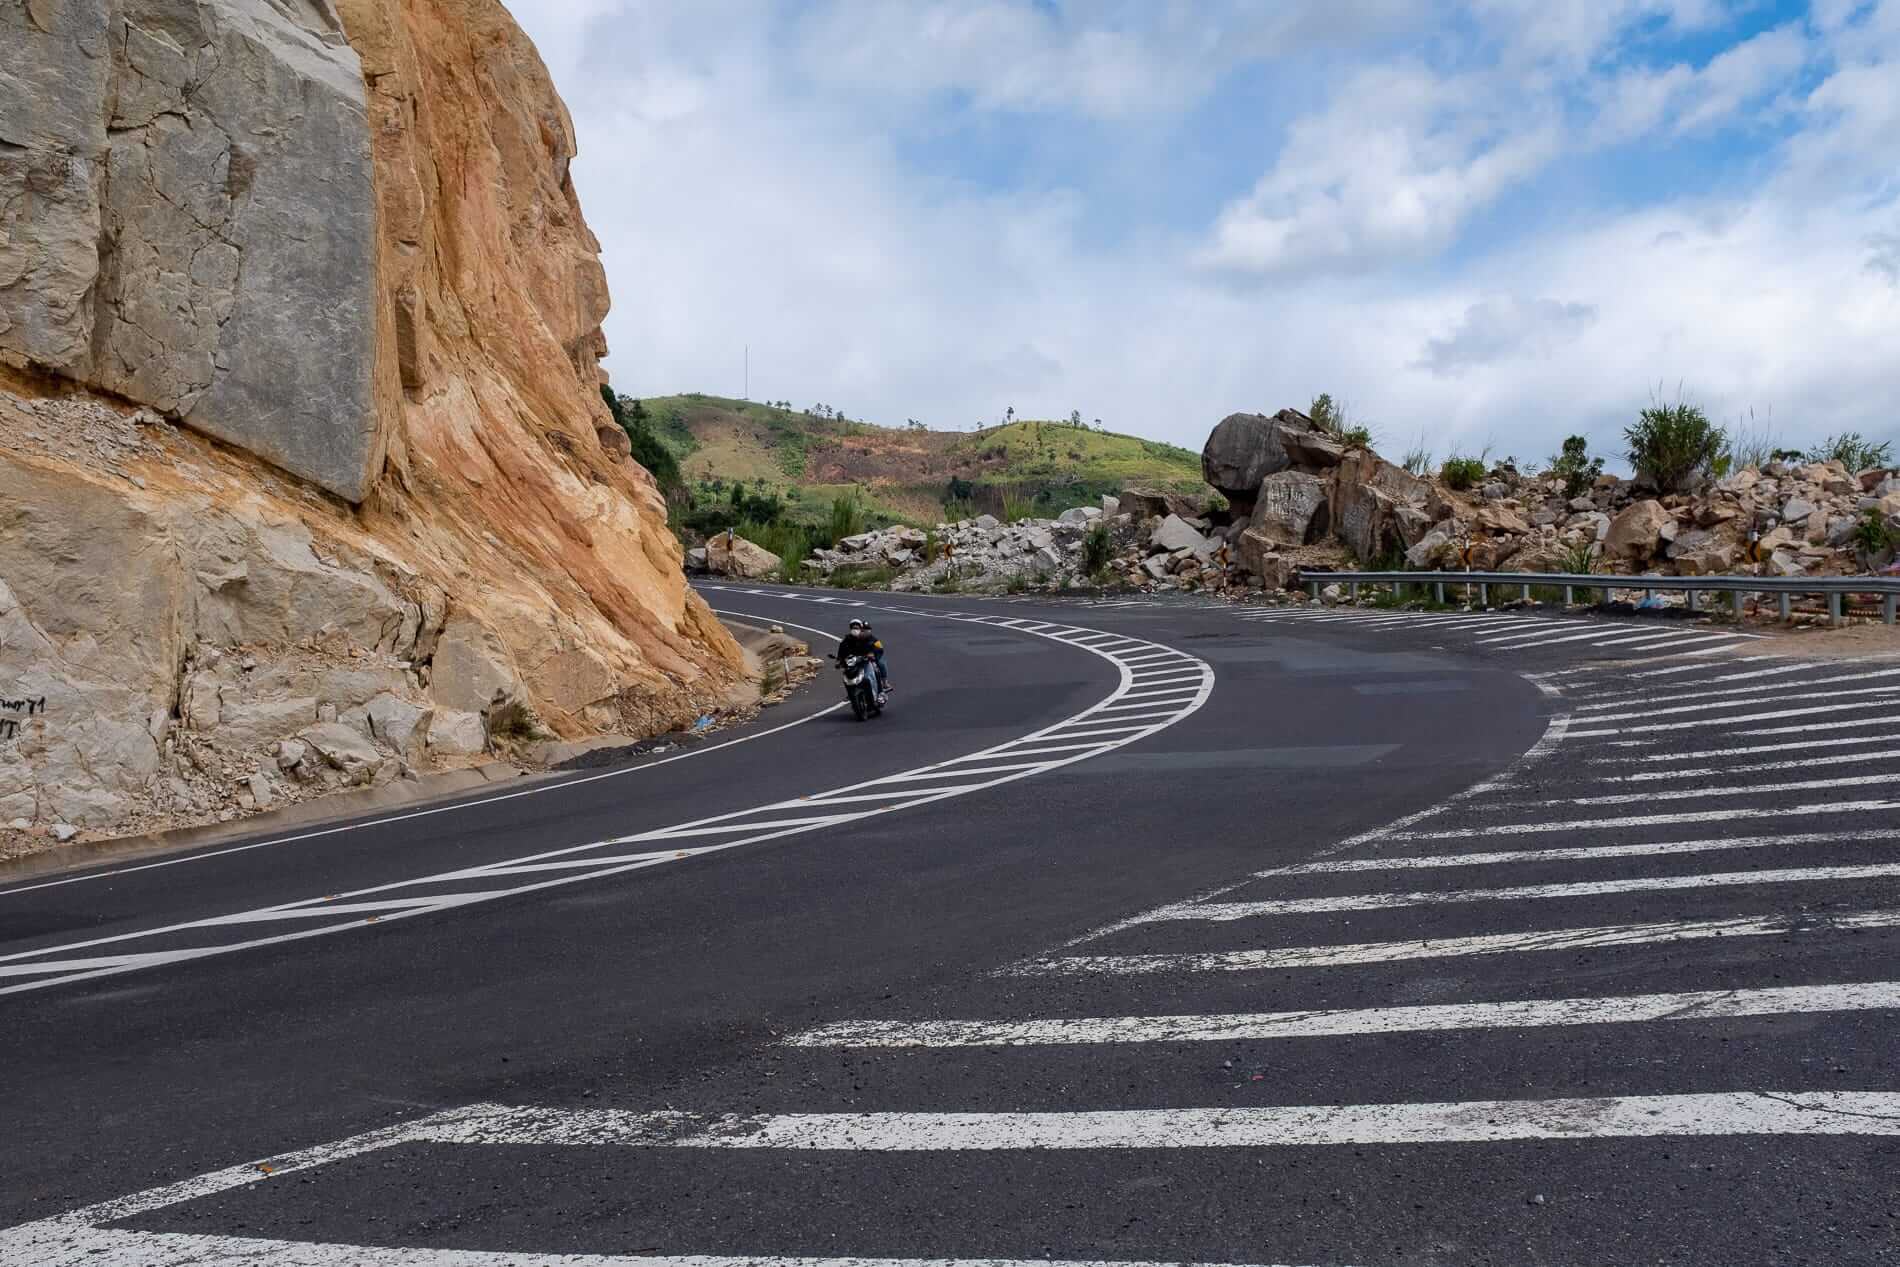 Mountain roads on the journey from Nha Trang to Da Lat